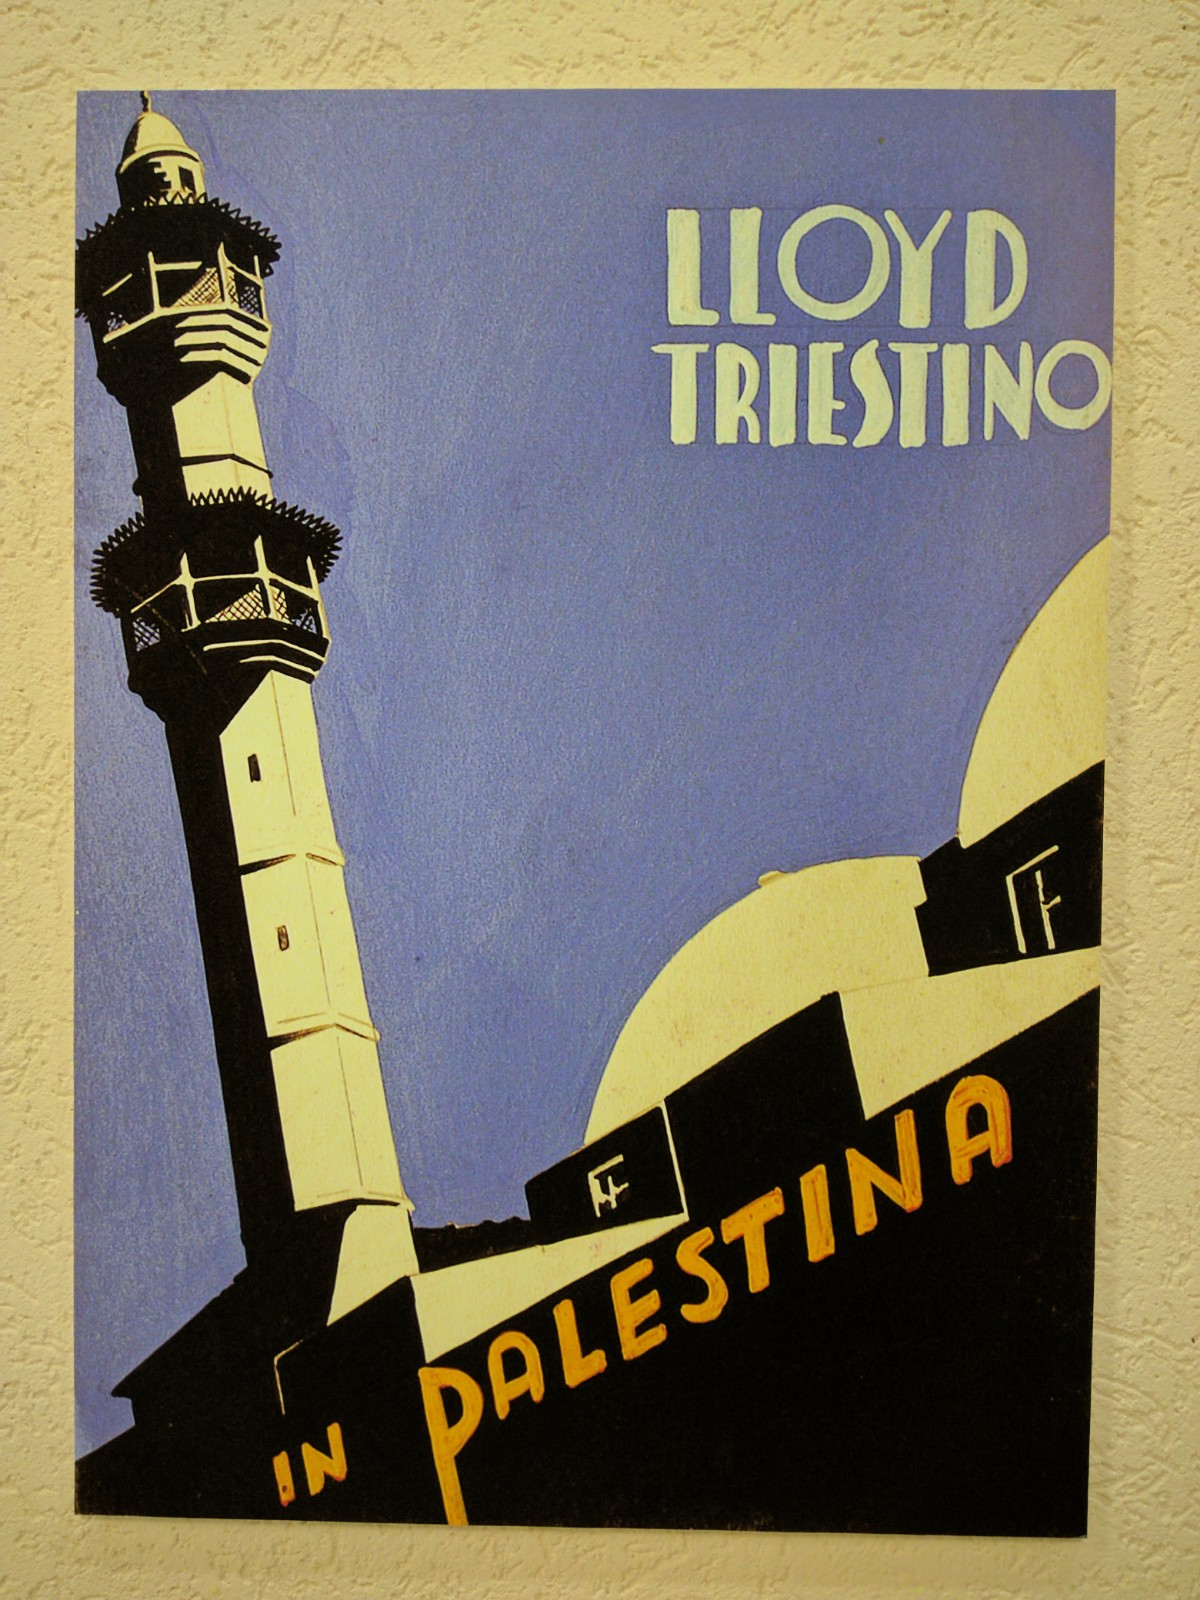 Vintage Travel Posters of Palestine